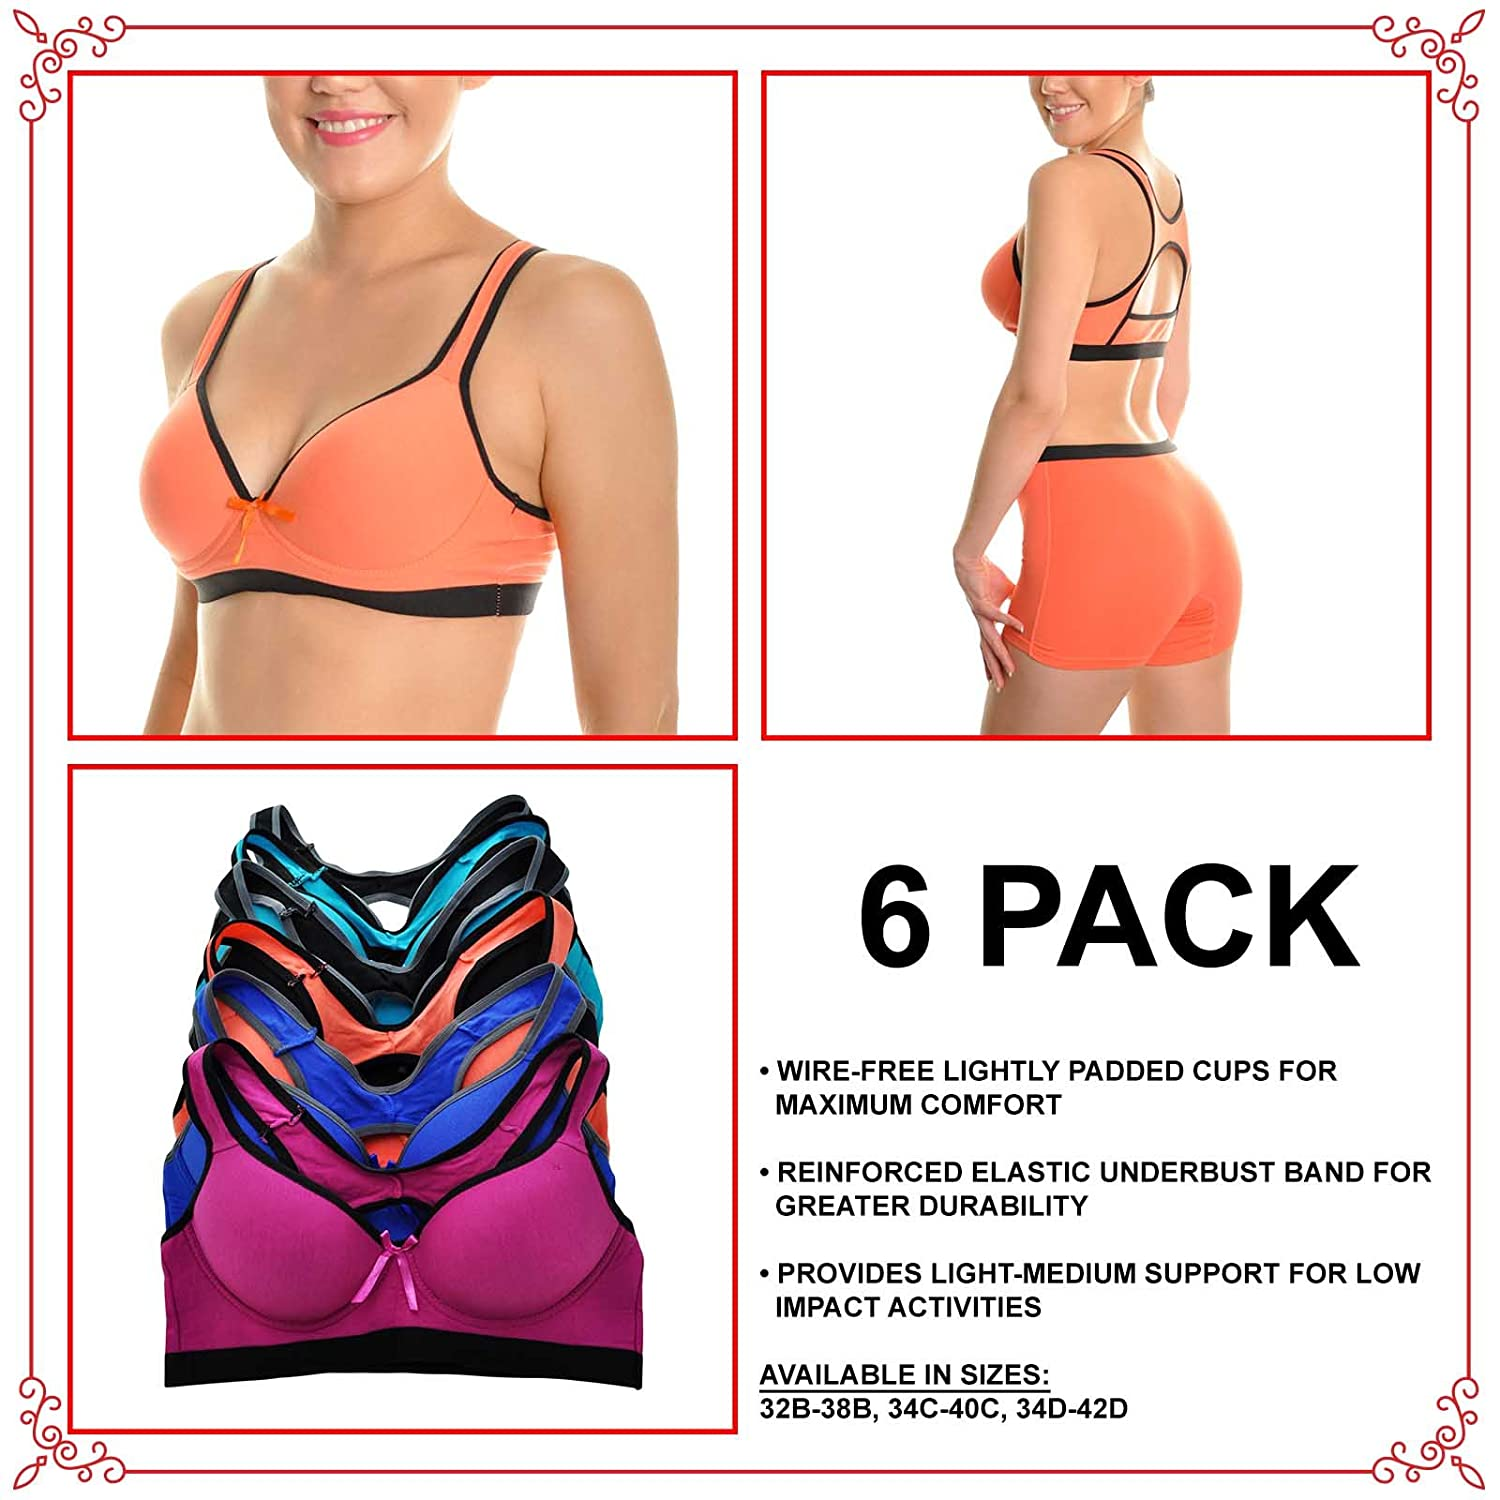 Angelina Cotton Sports Bra and High Rise Boxer Briefs Set 6-Pack Sold SEPARATLY